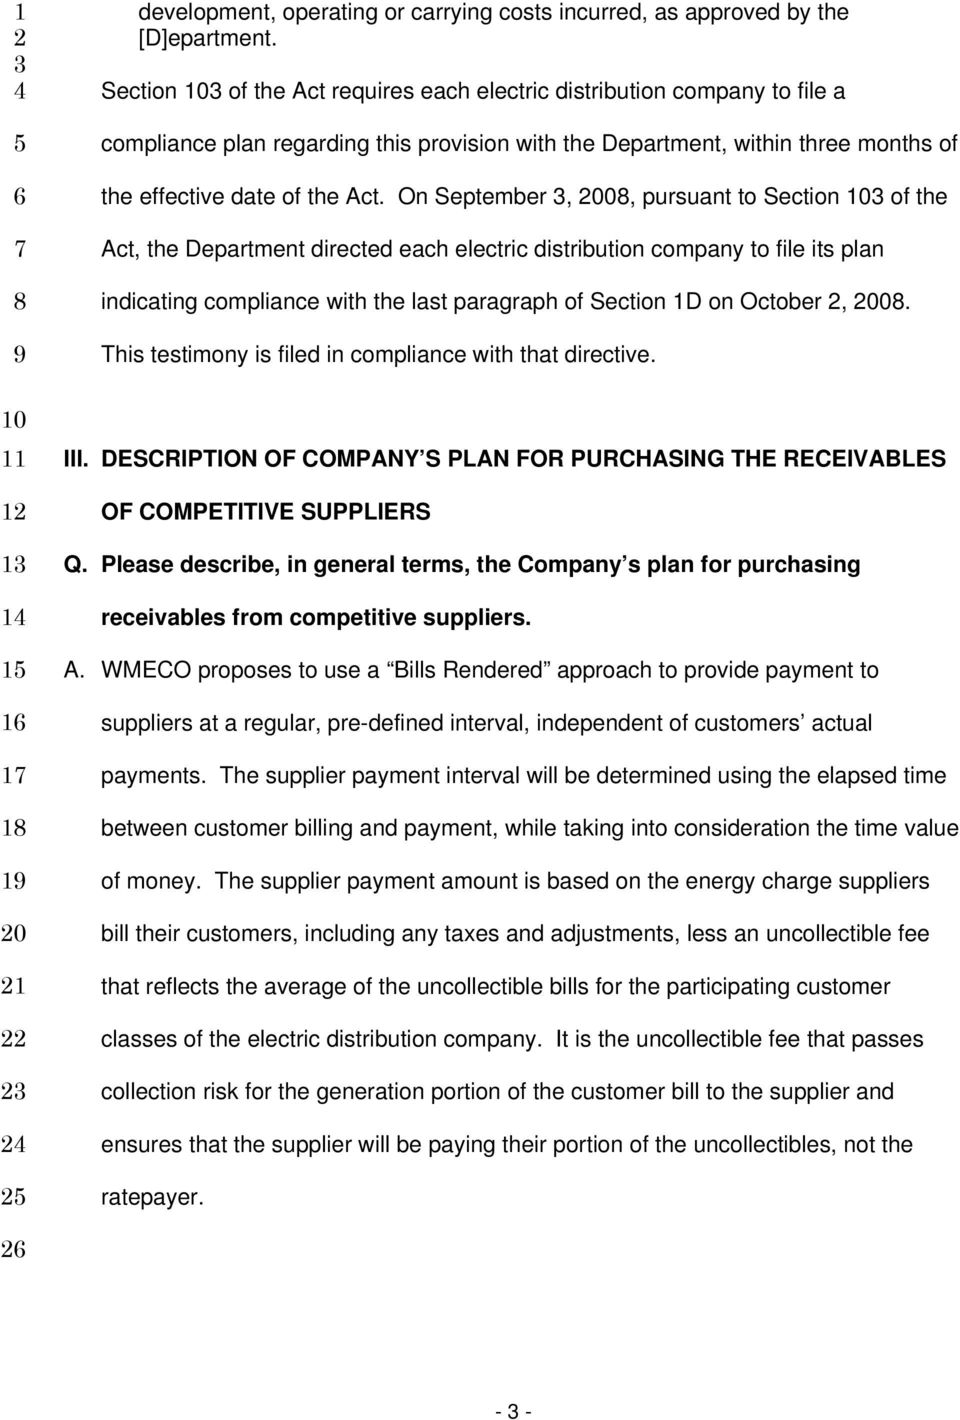 On September, 00, pursuant to Section of the Act, the Department directed each electric distribution company to file its plan indicating compliance with the last paragraph of Section 1D on October,